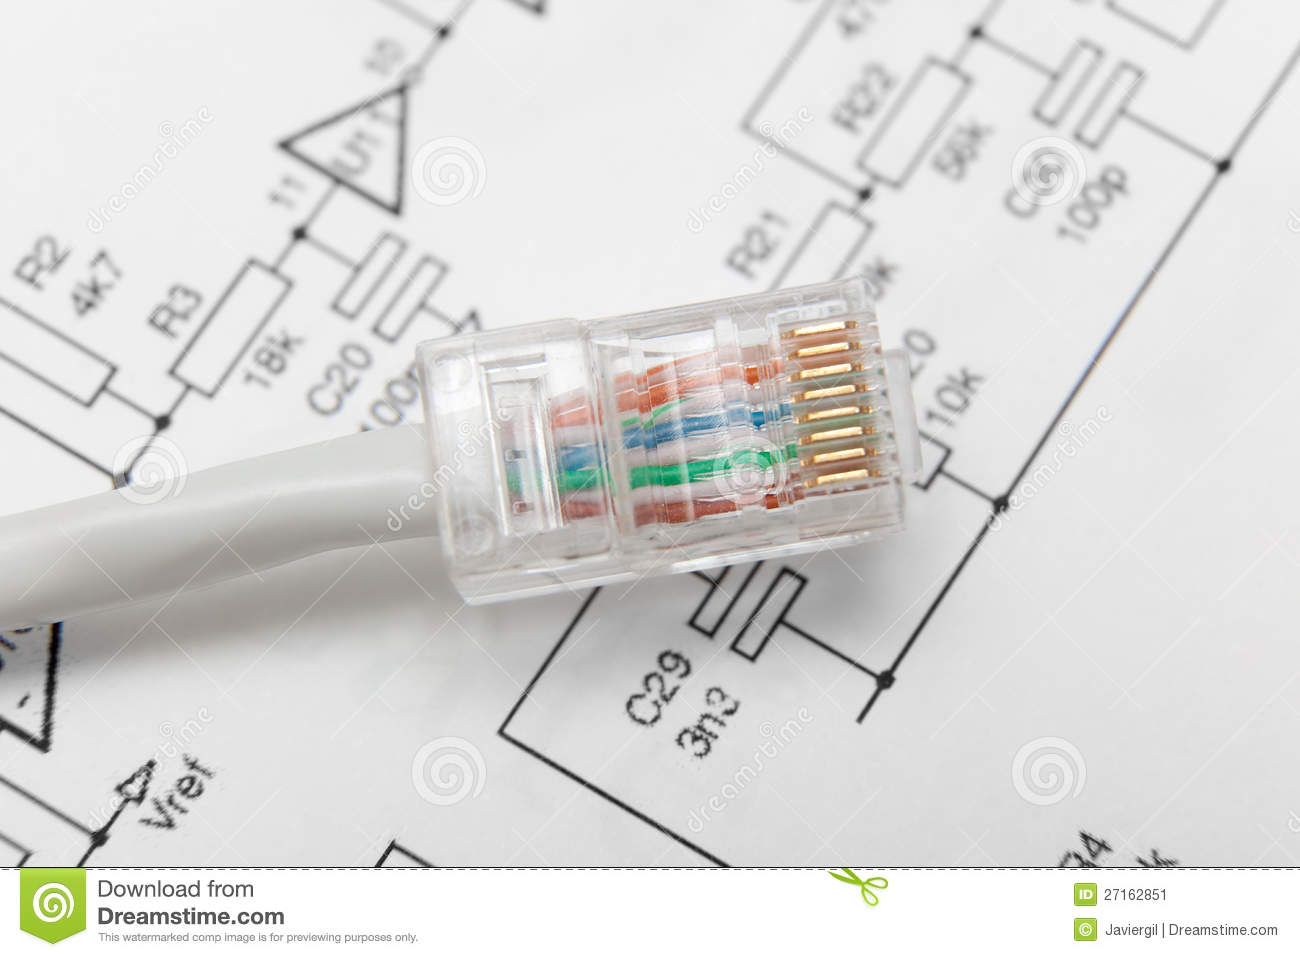 Computer Network Cable Rj45 Stock Image Of Close Internet Wiring Diagram Download